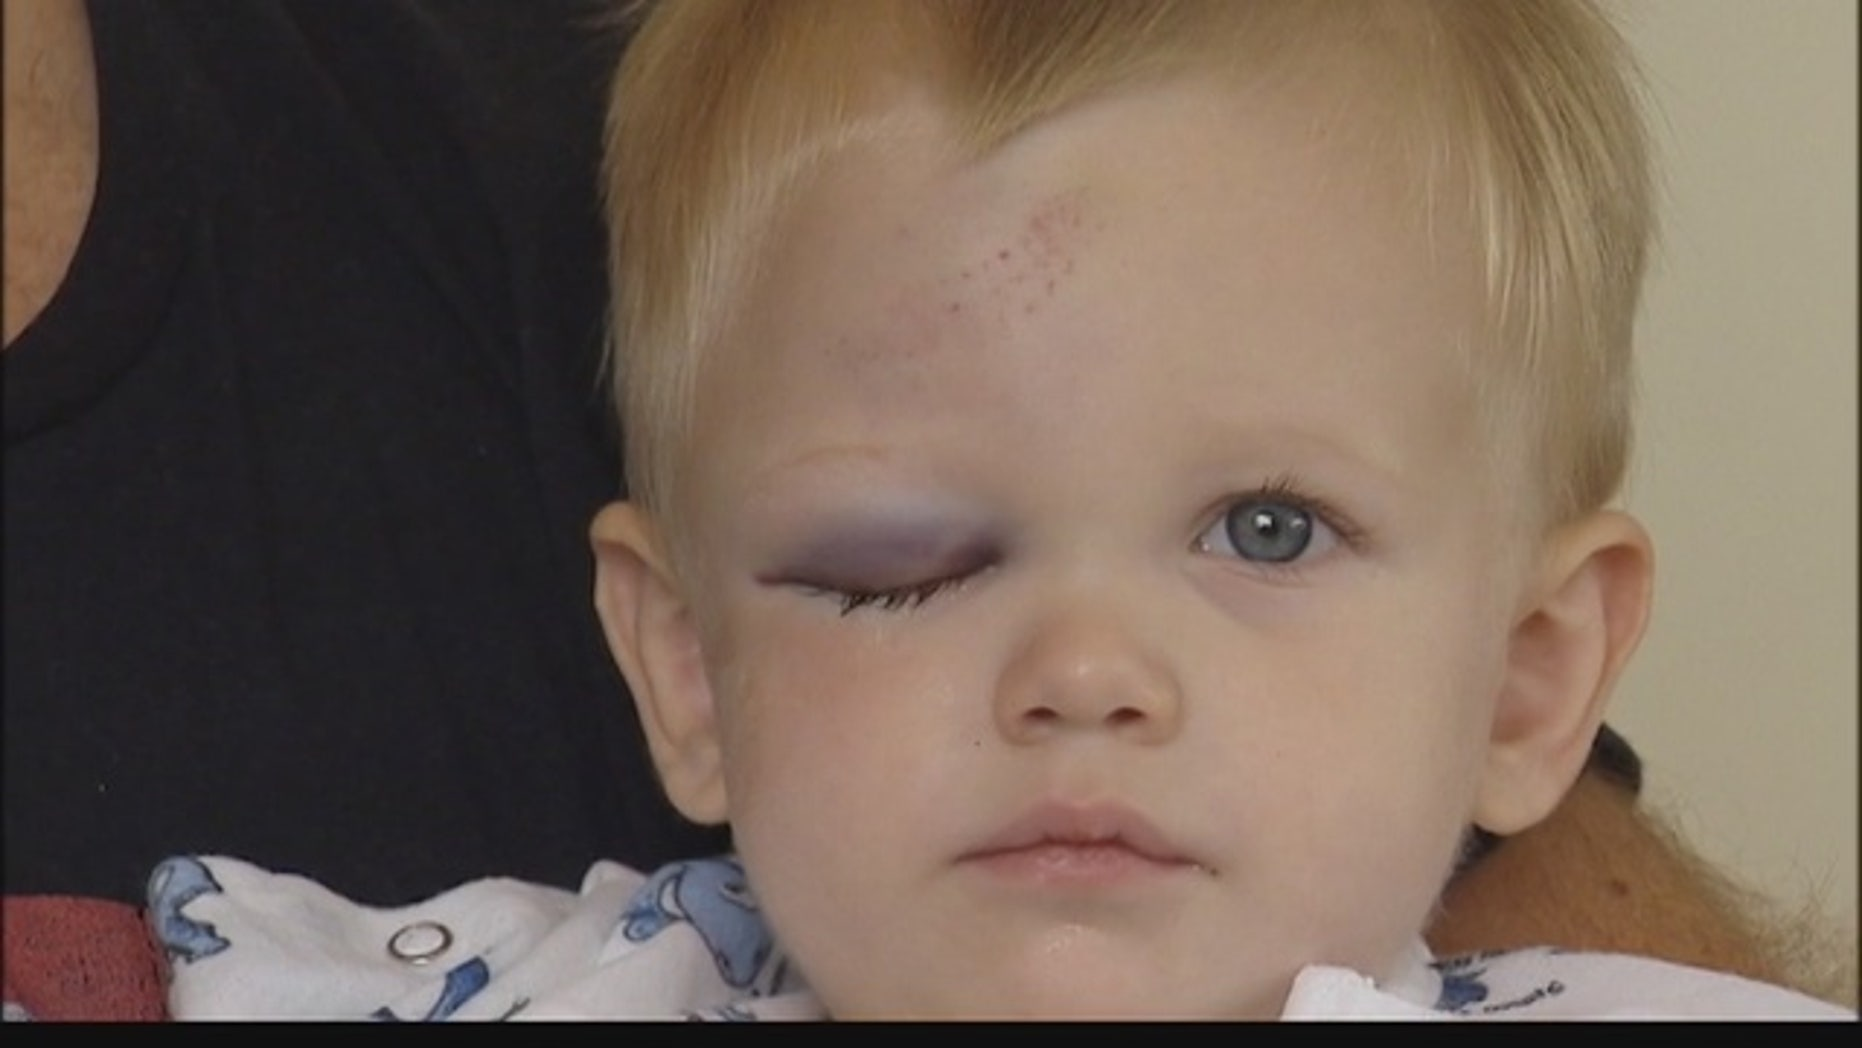 Rowan Senders is expected to make a full recovery after being hit by a home run ball at the Chicago White Sox game.